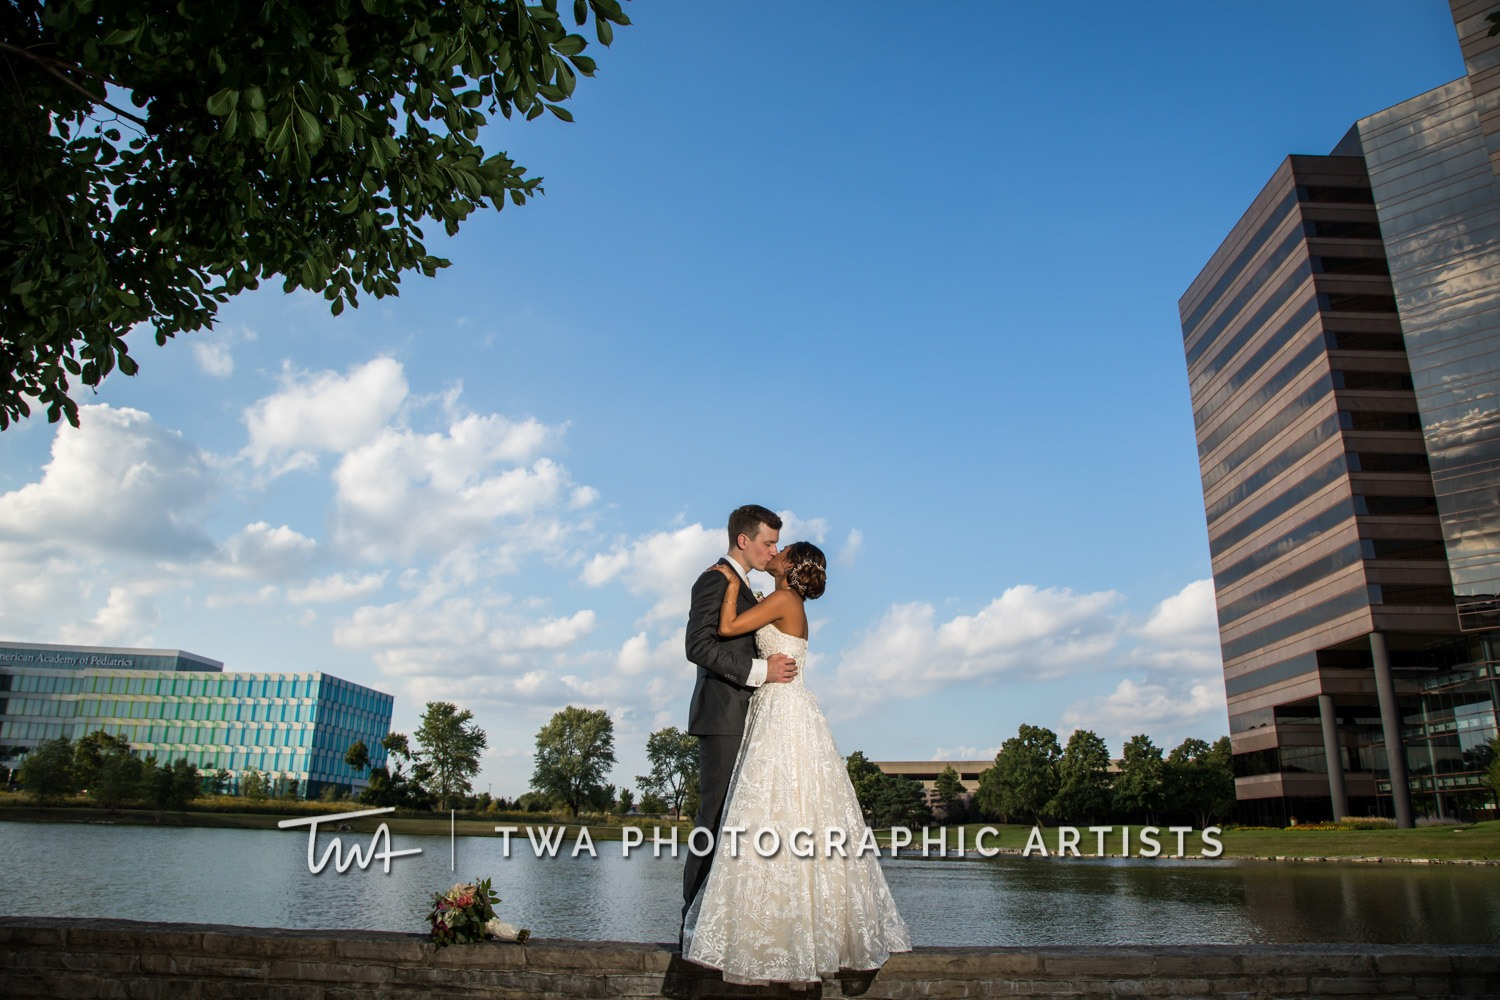 Chicago-Wedding-Photographer-TWA-Photographic-Artists-Shah_Billings_WM_TL-0846